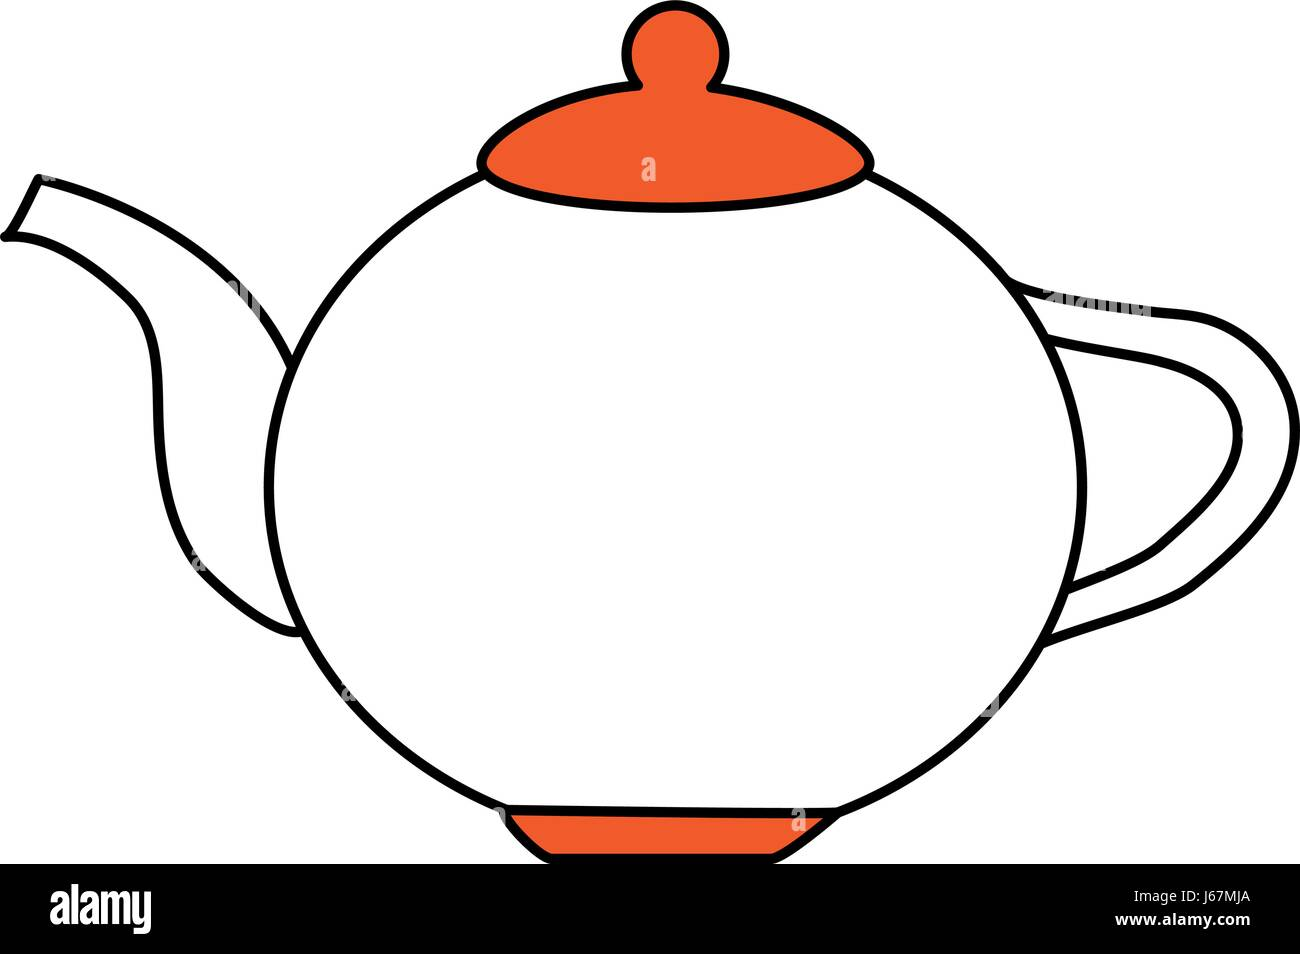 color silhouette image cartoon porcelain tea kettle for hot drinks - Stock Vector